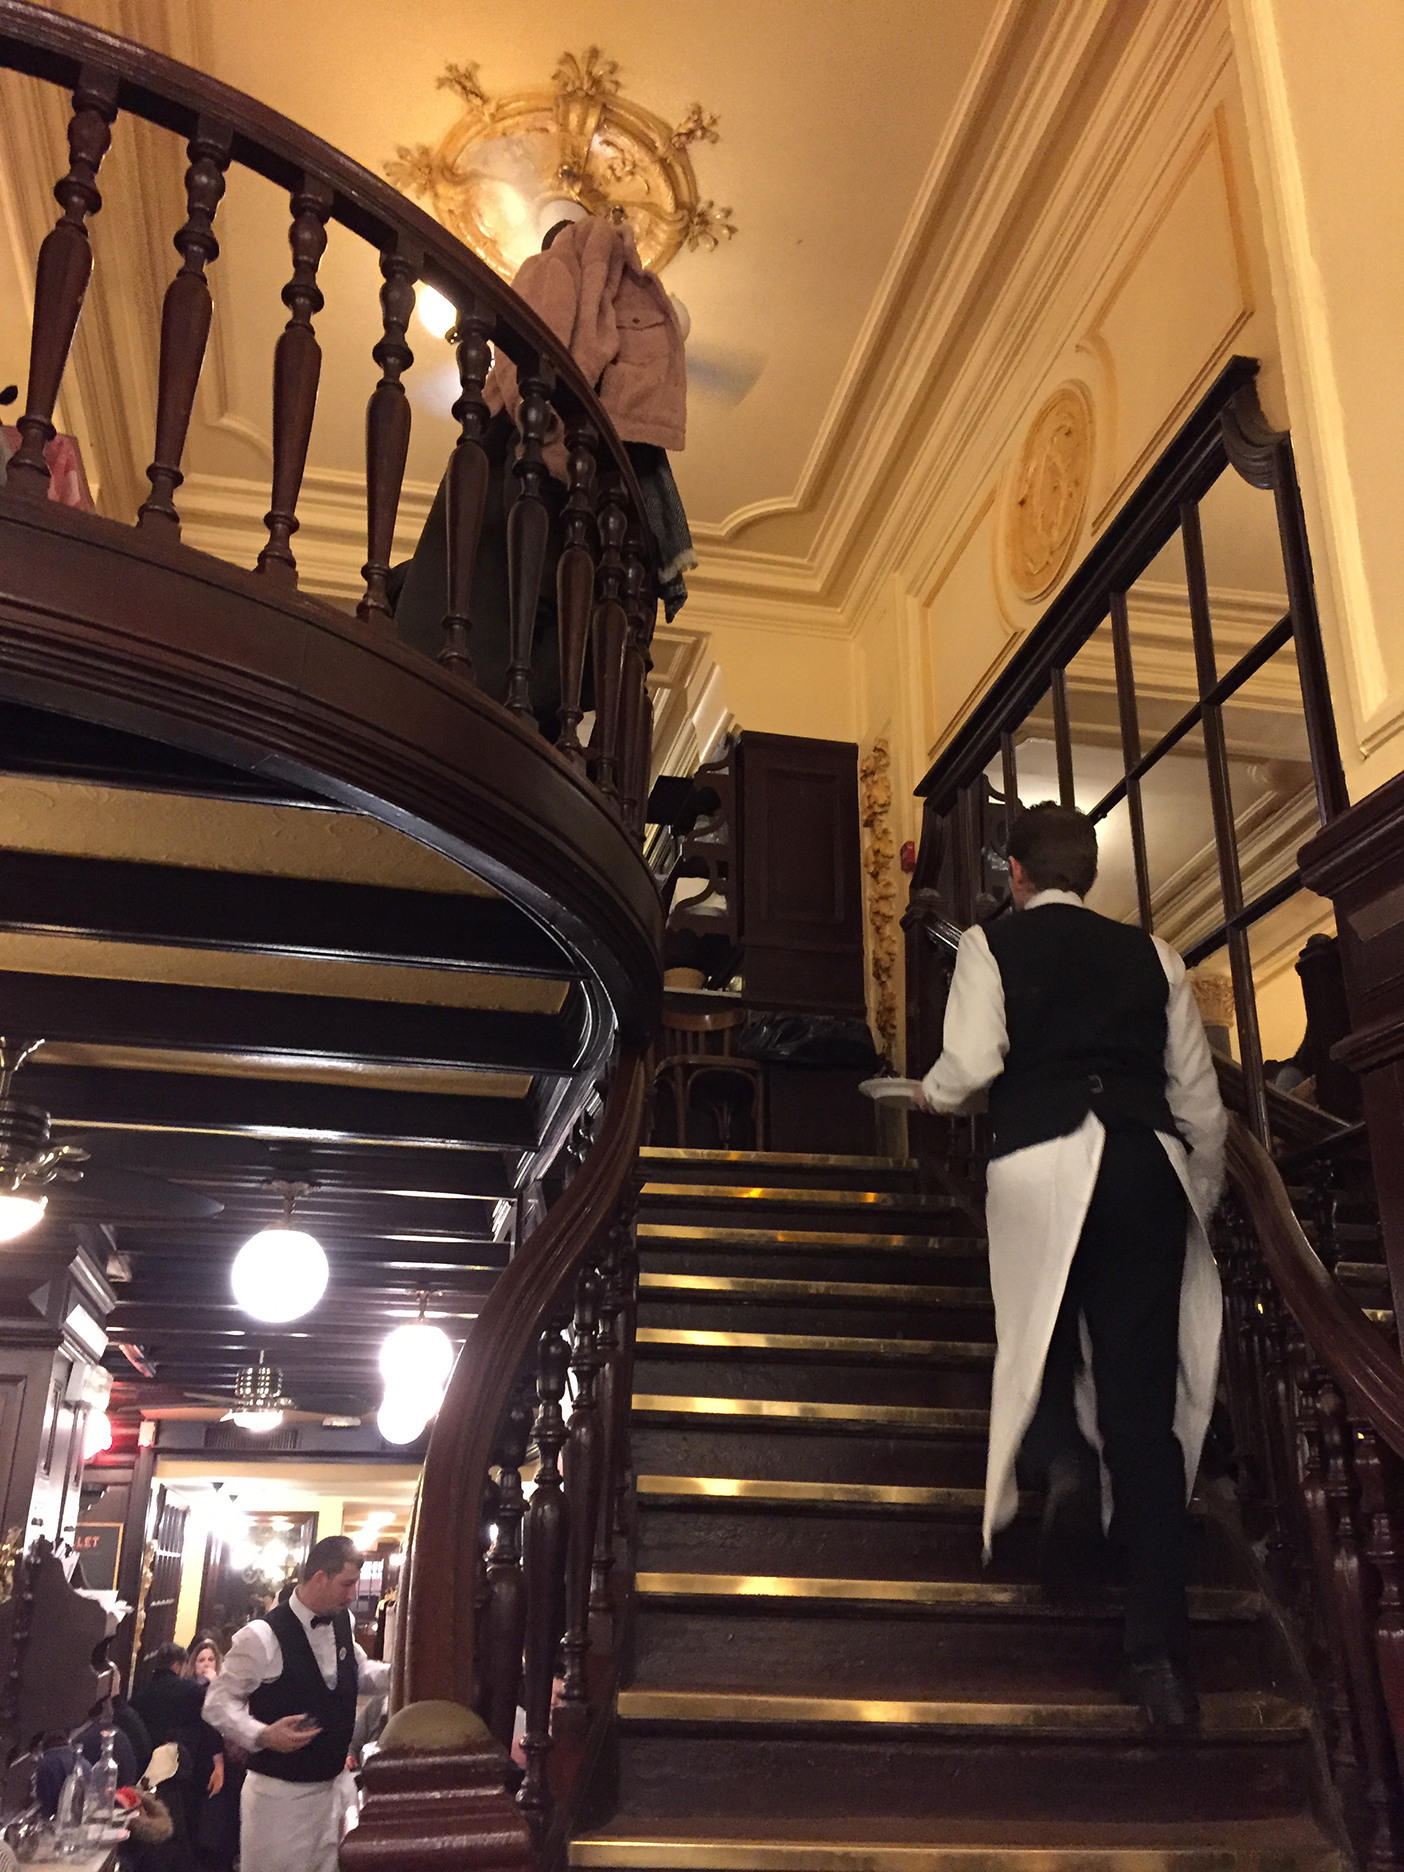 Yes, there is a mezzanine! Brasserie waiters always look so sharp in their black and white uniforms.